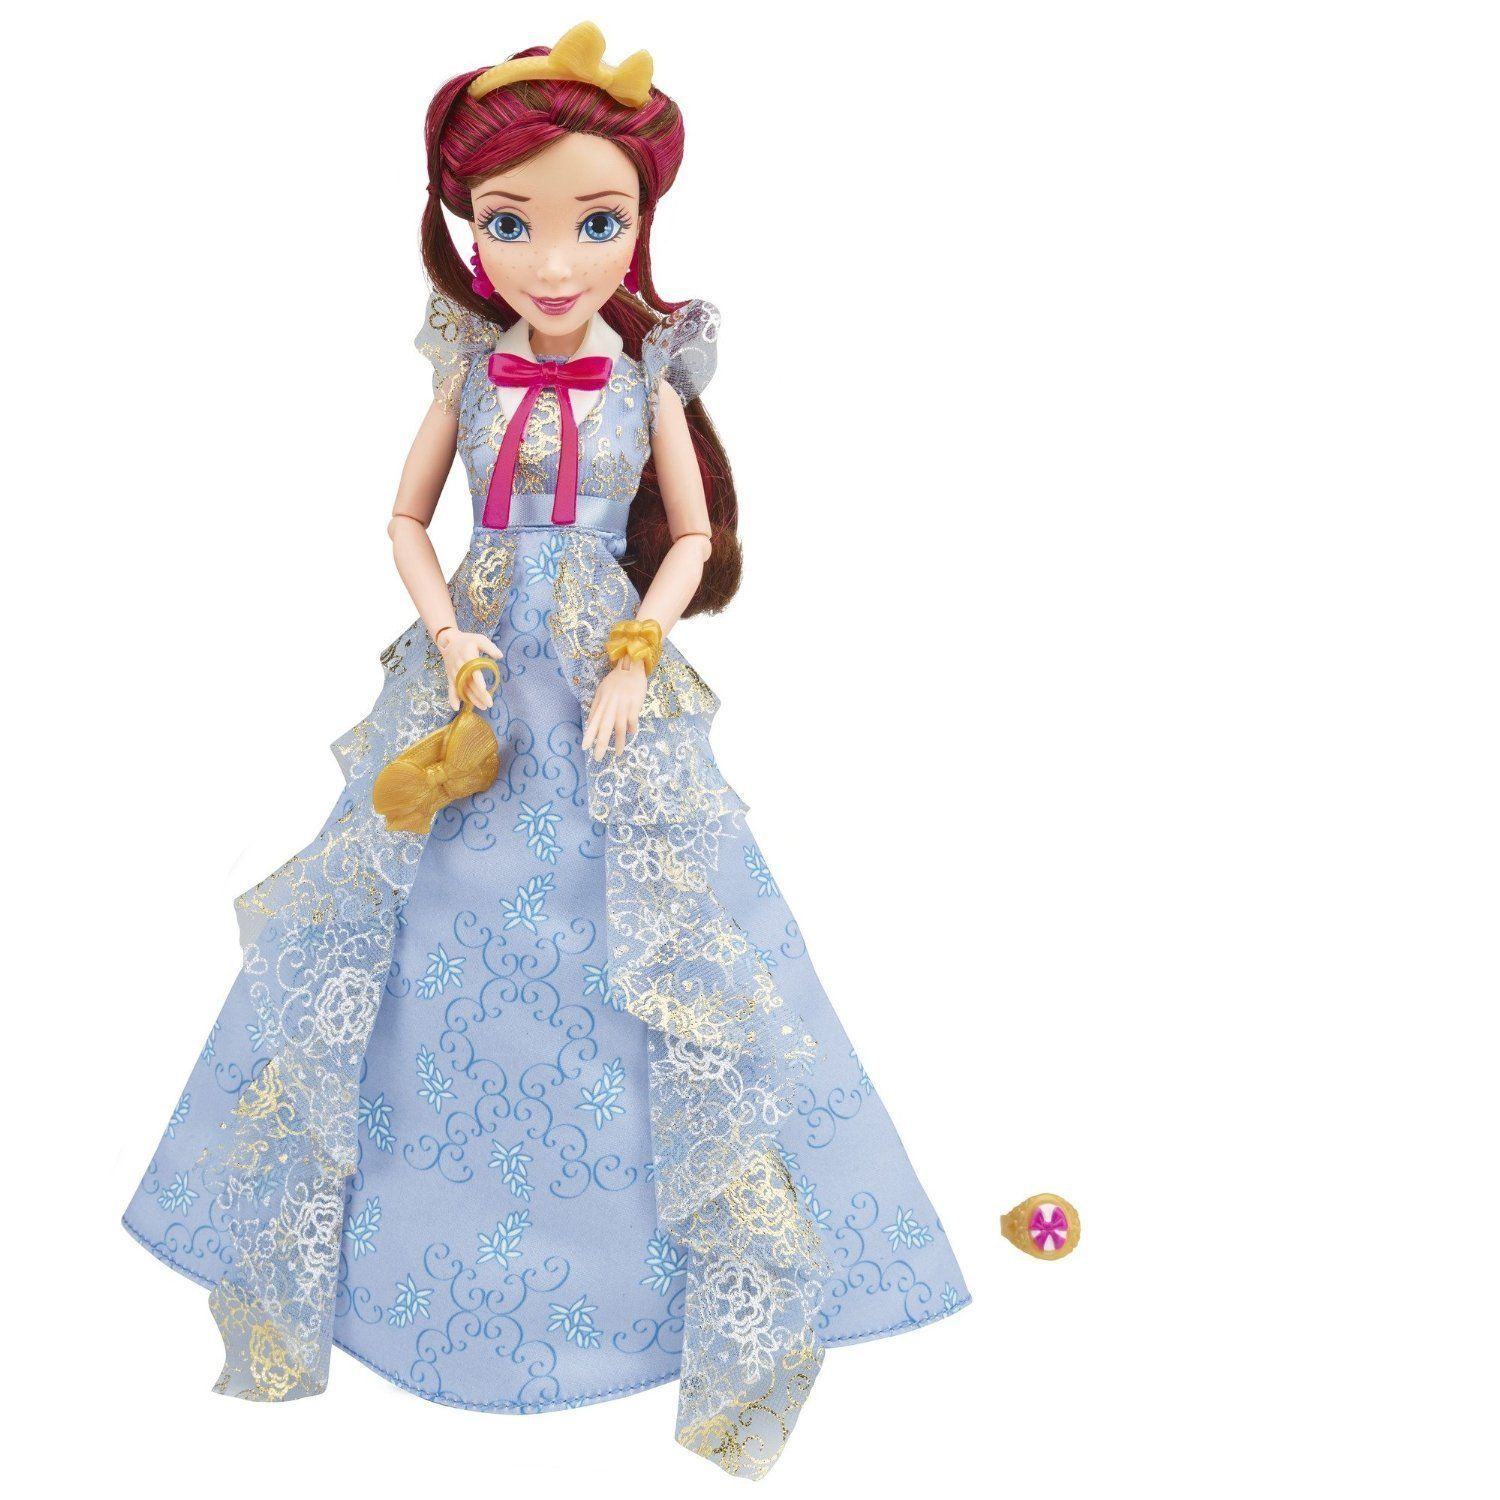 Disney Descendants Coronation Jane Auradon Prep Doll in Blue Gown, Hasbro, 6+